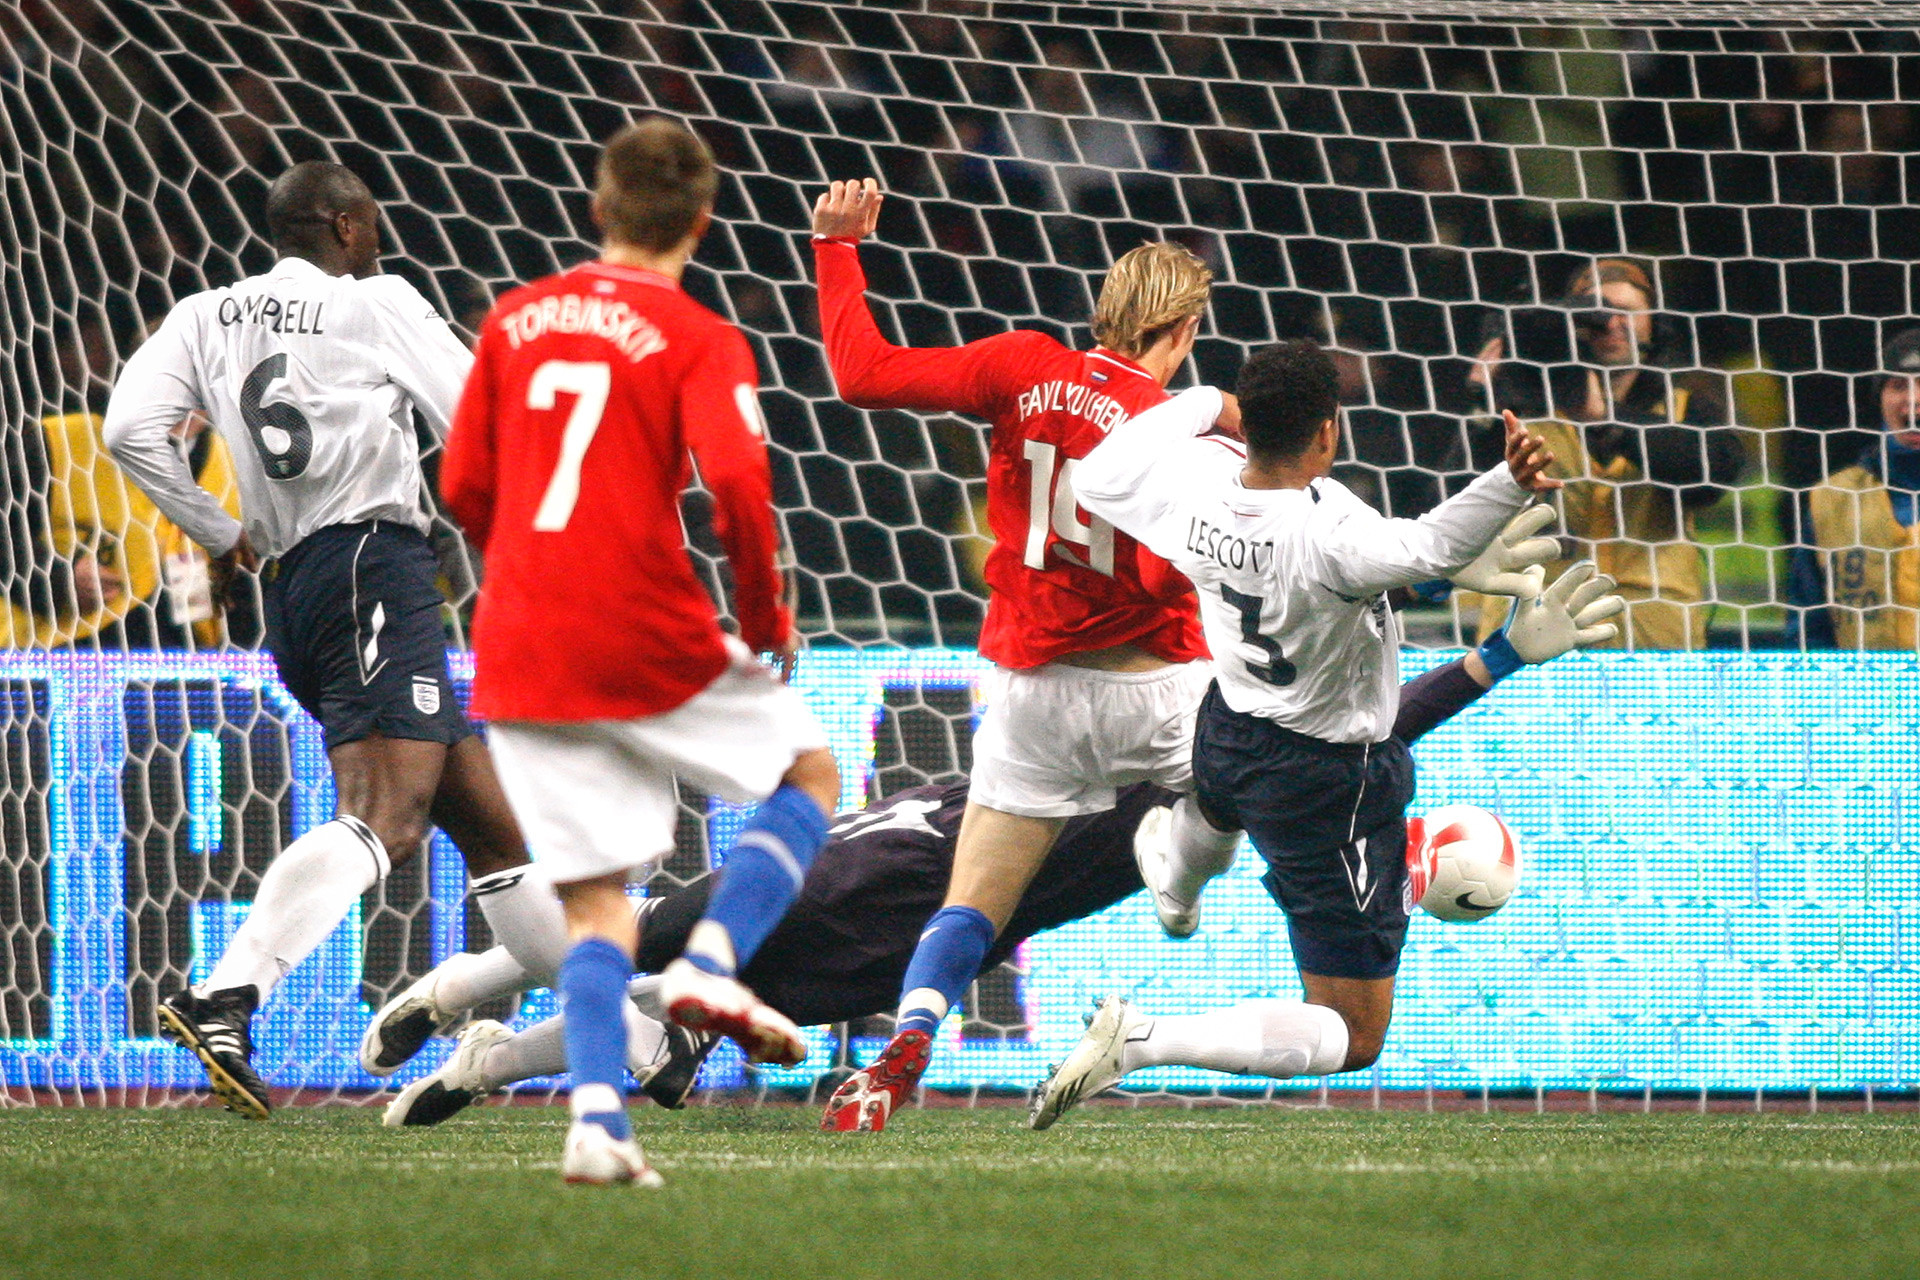 Roman Pavlyuchenko scoring in the match against England (2:1). This victory led Russia to the Euro, leaving the English team behind.